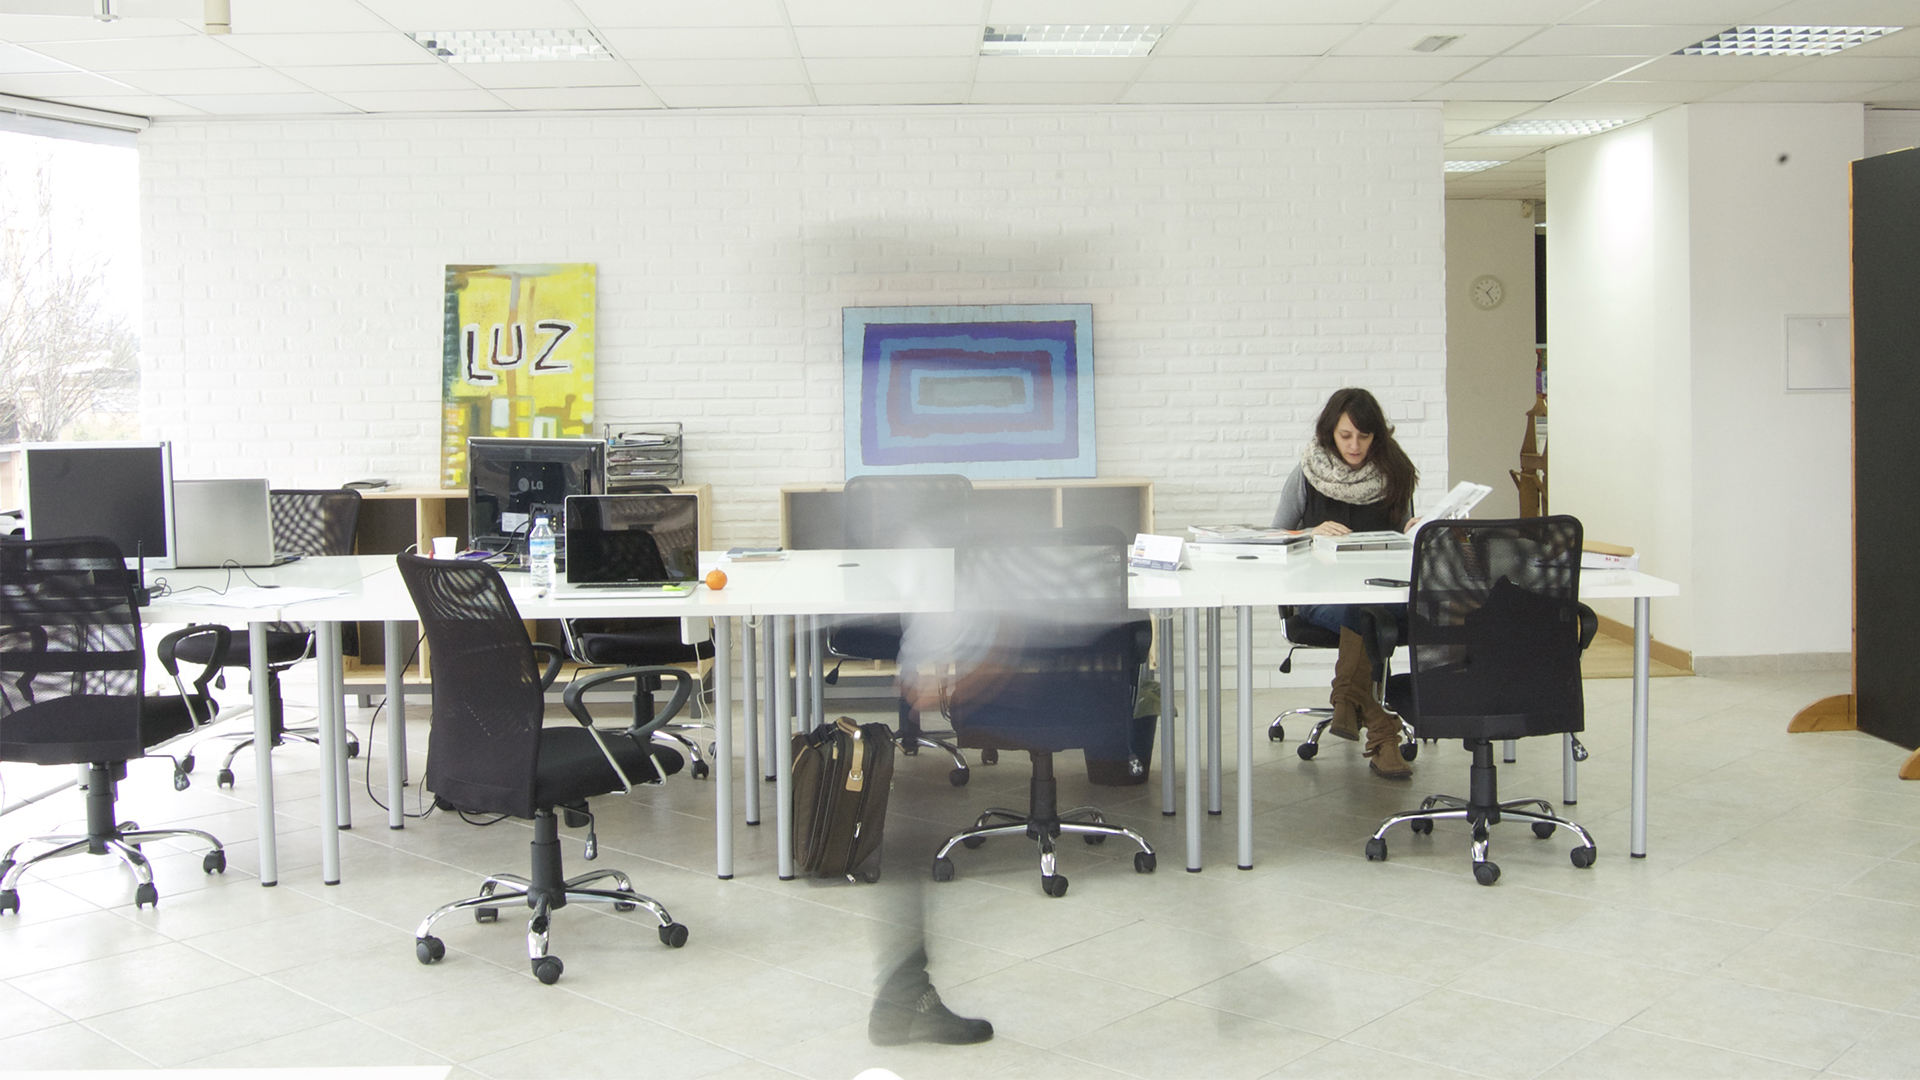 Coworking mallorca wohaby wohaby coworking manacor - Coworking mallorca ...